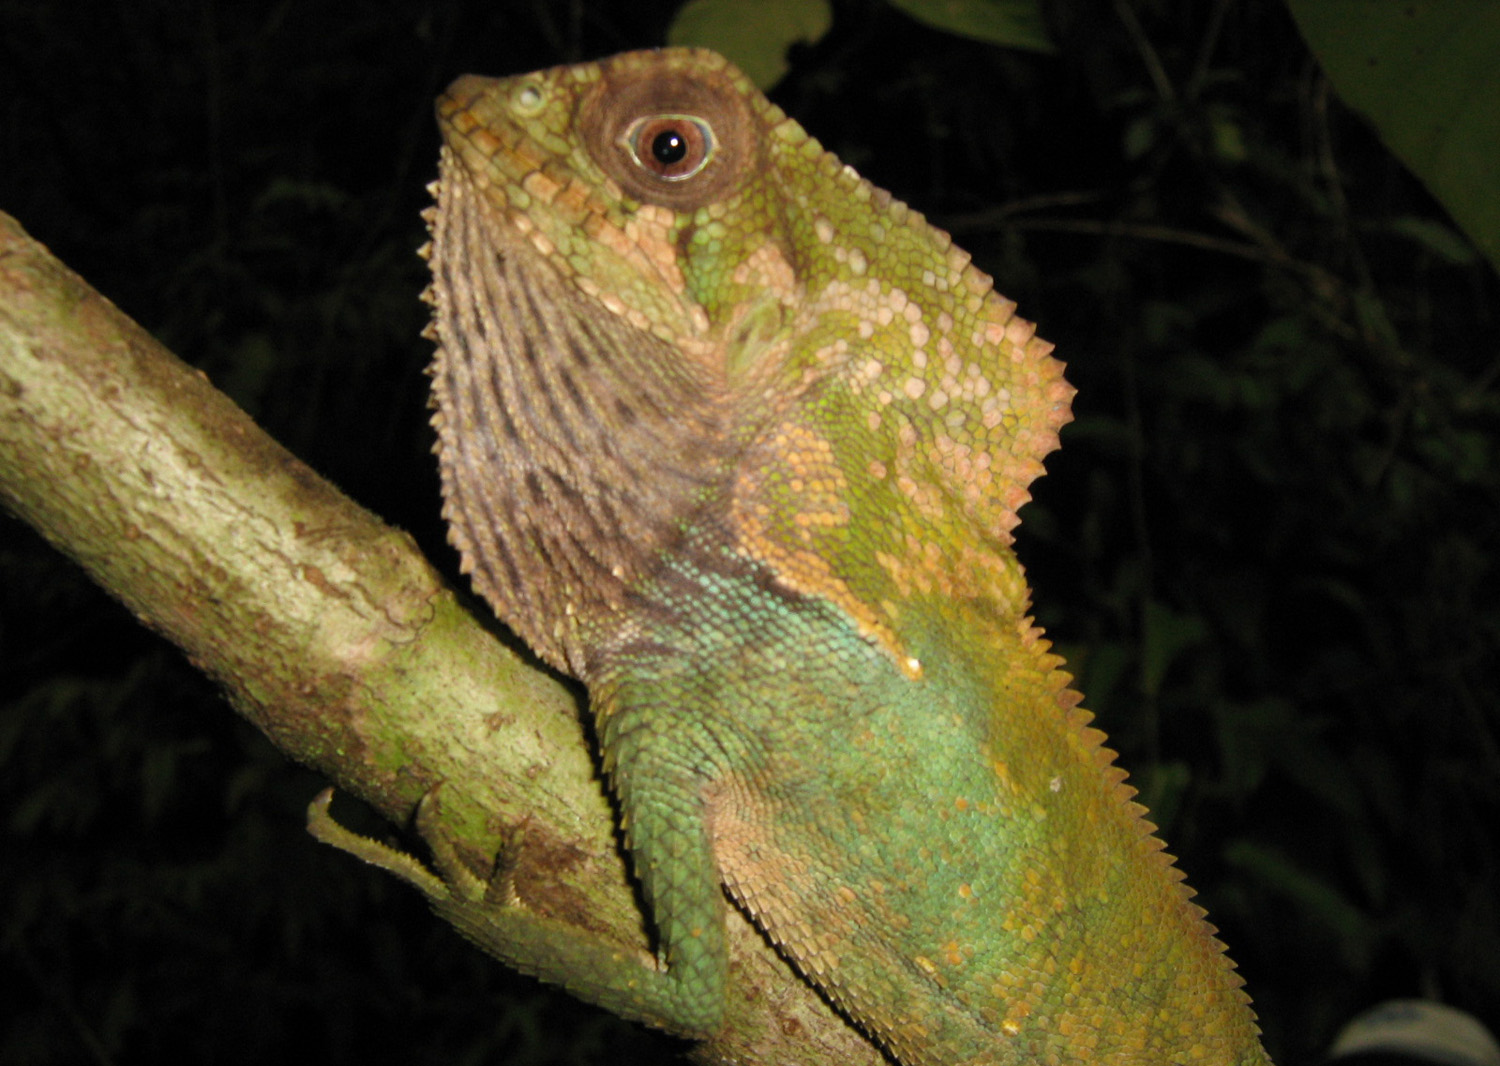 One of Costa Rica's igunas that can be seen from the lodge